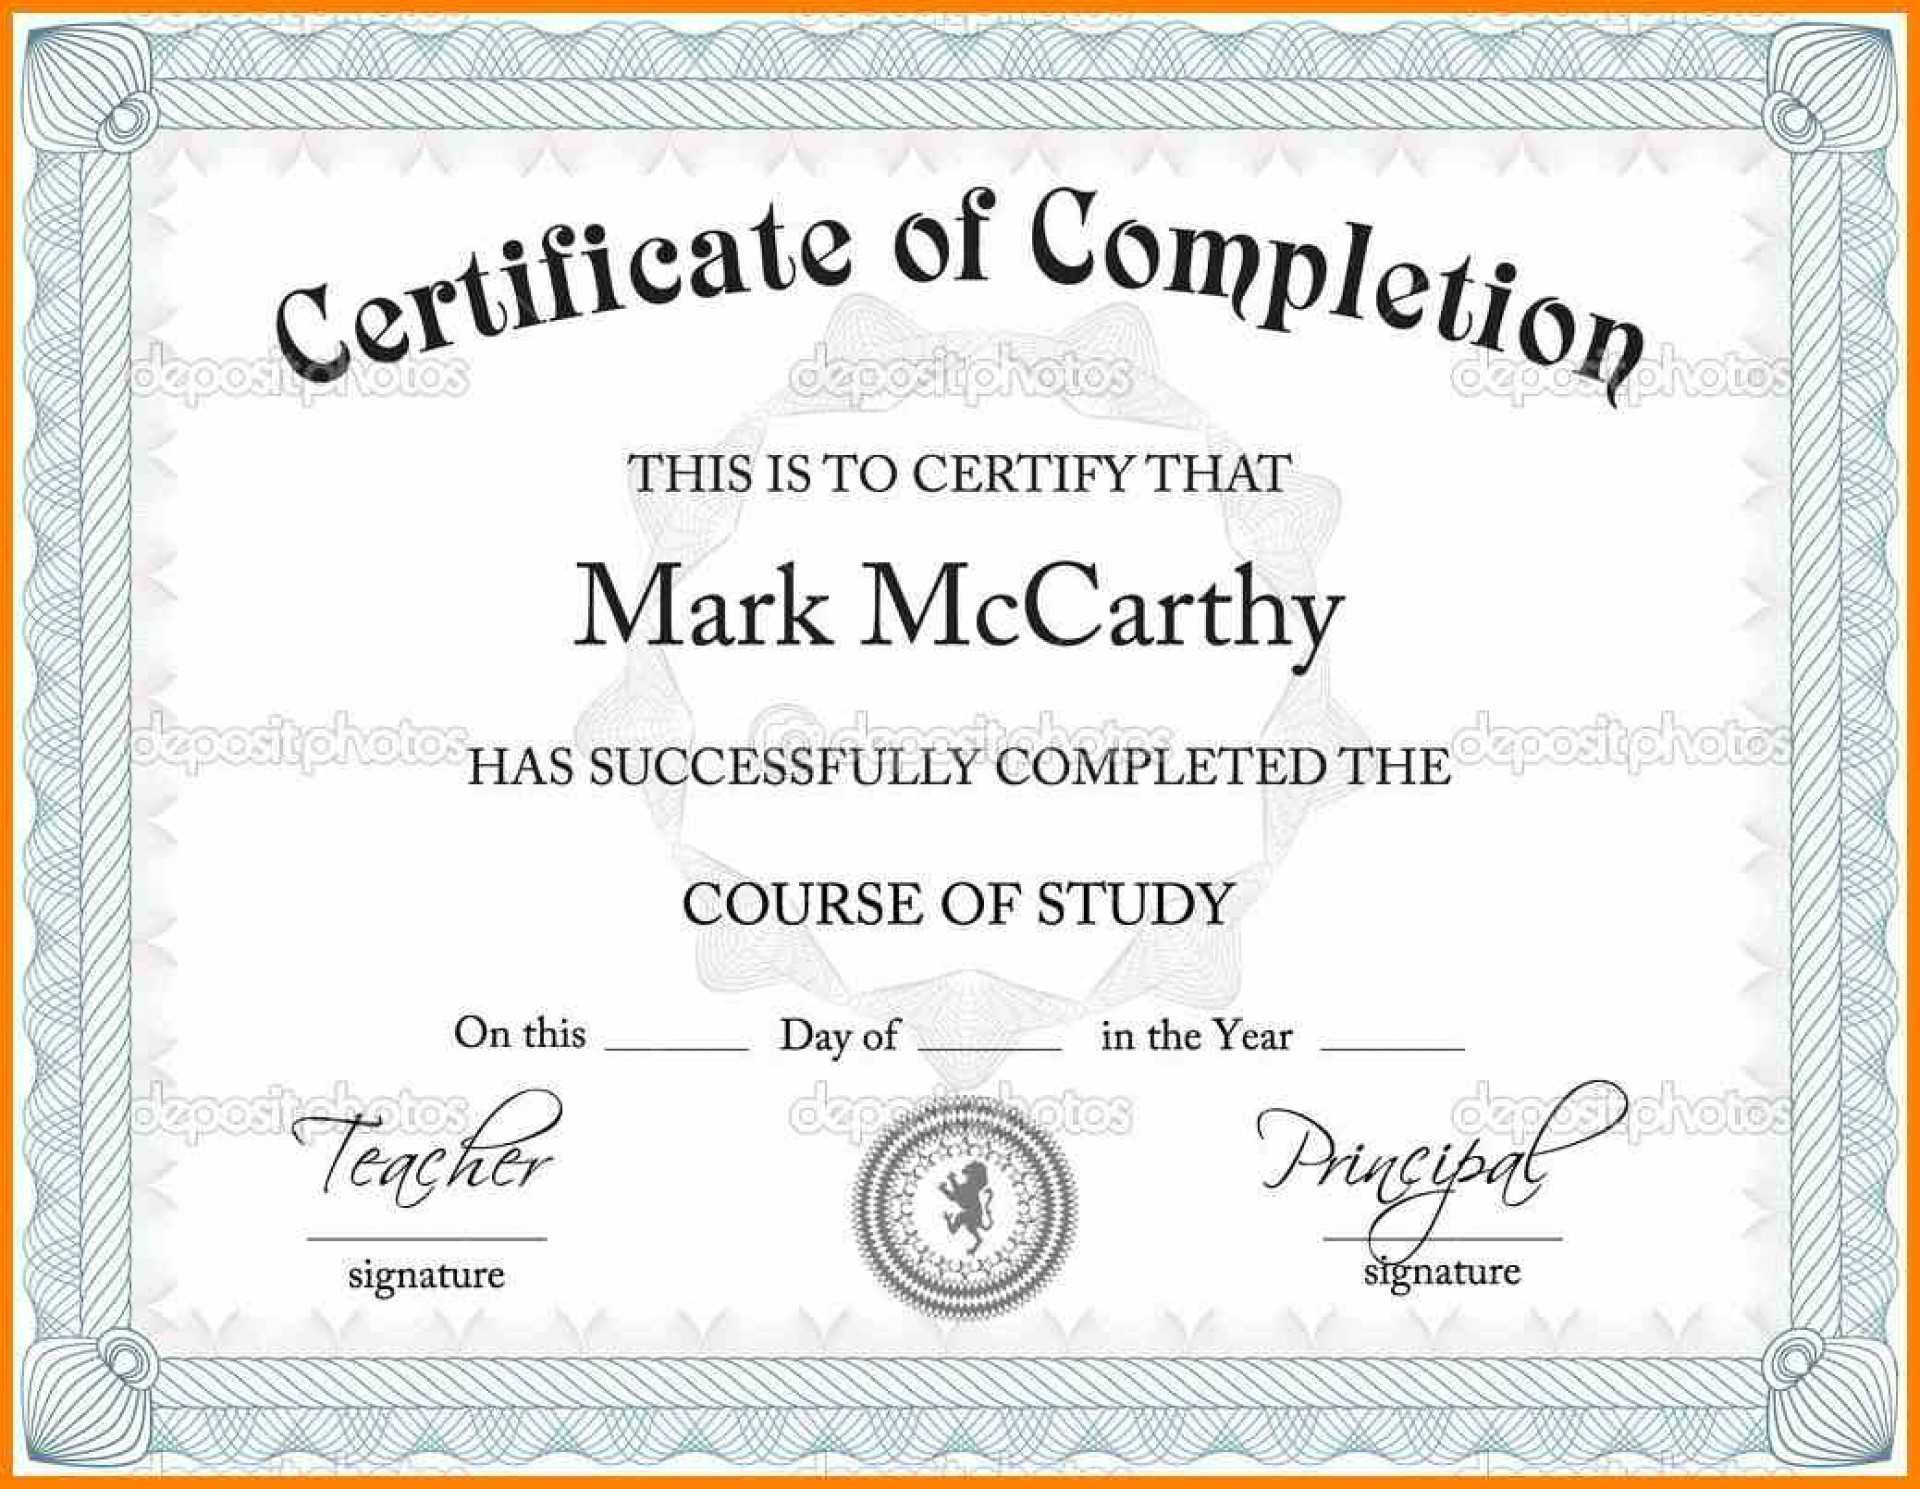 002 Certificate Templates Free Download With Regard To Powerpoint Certificate Templates Free Download